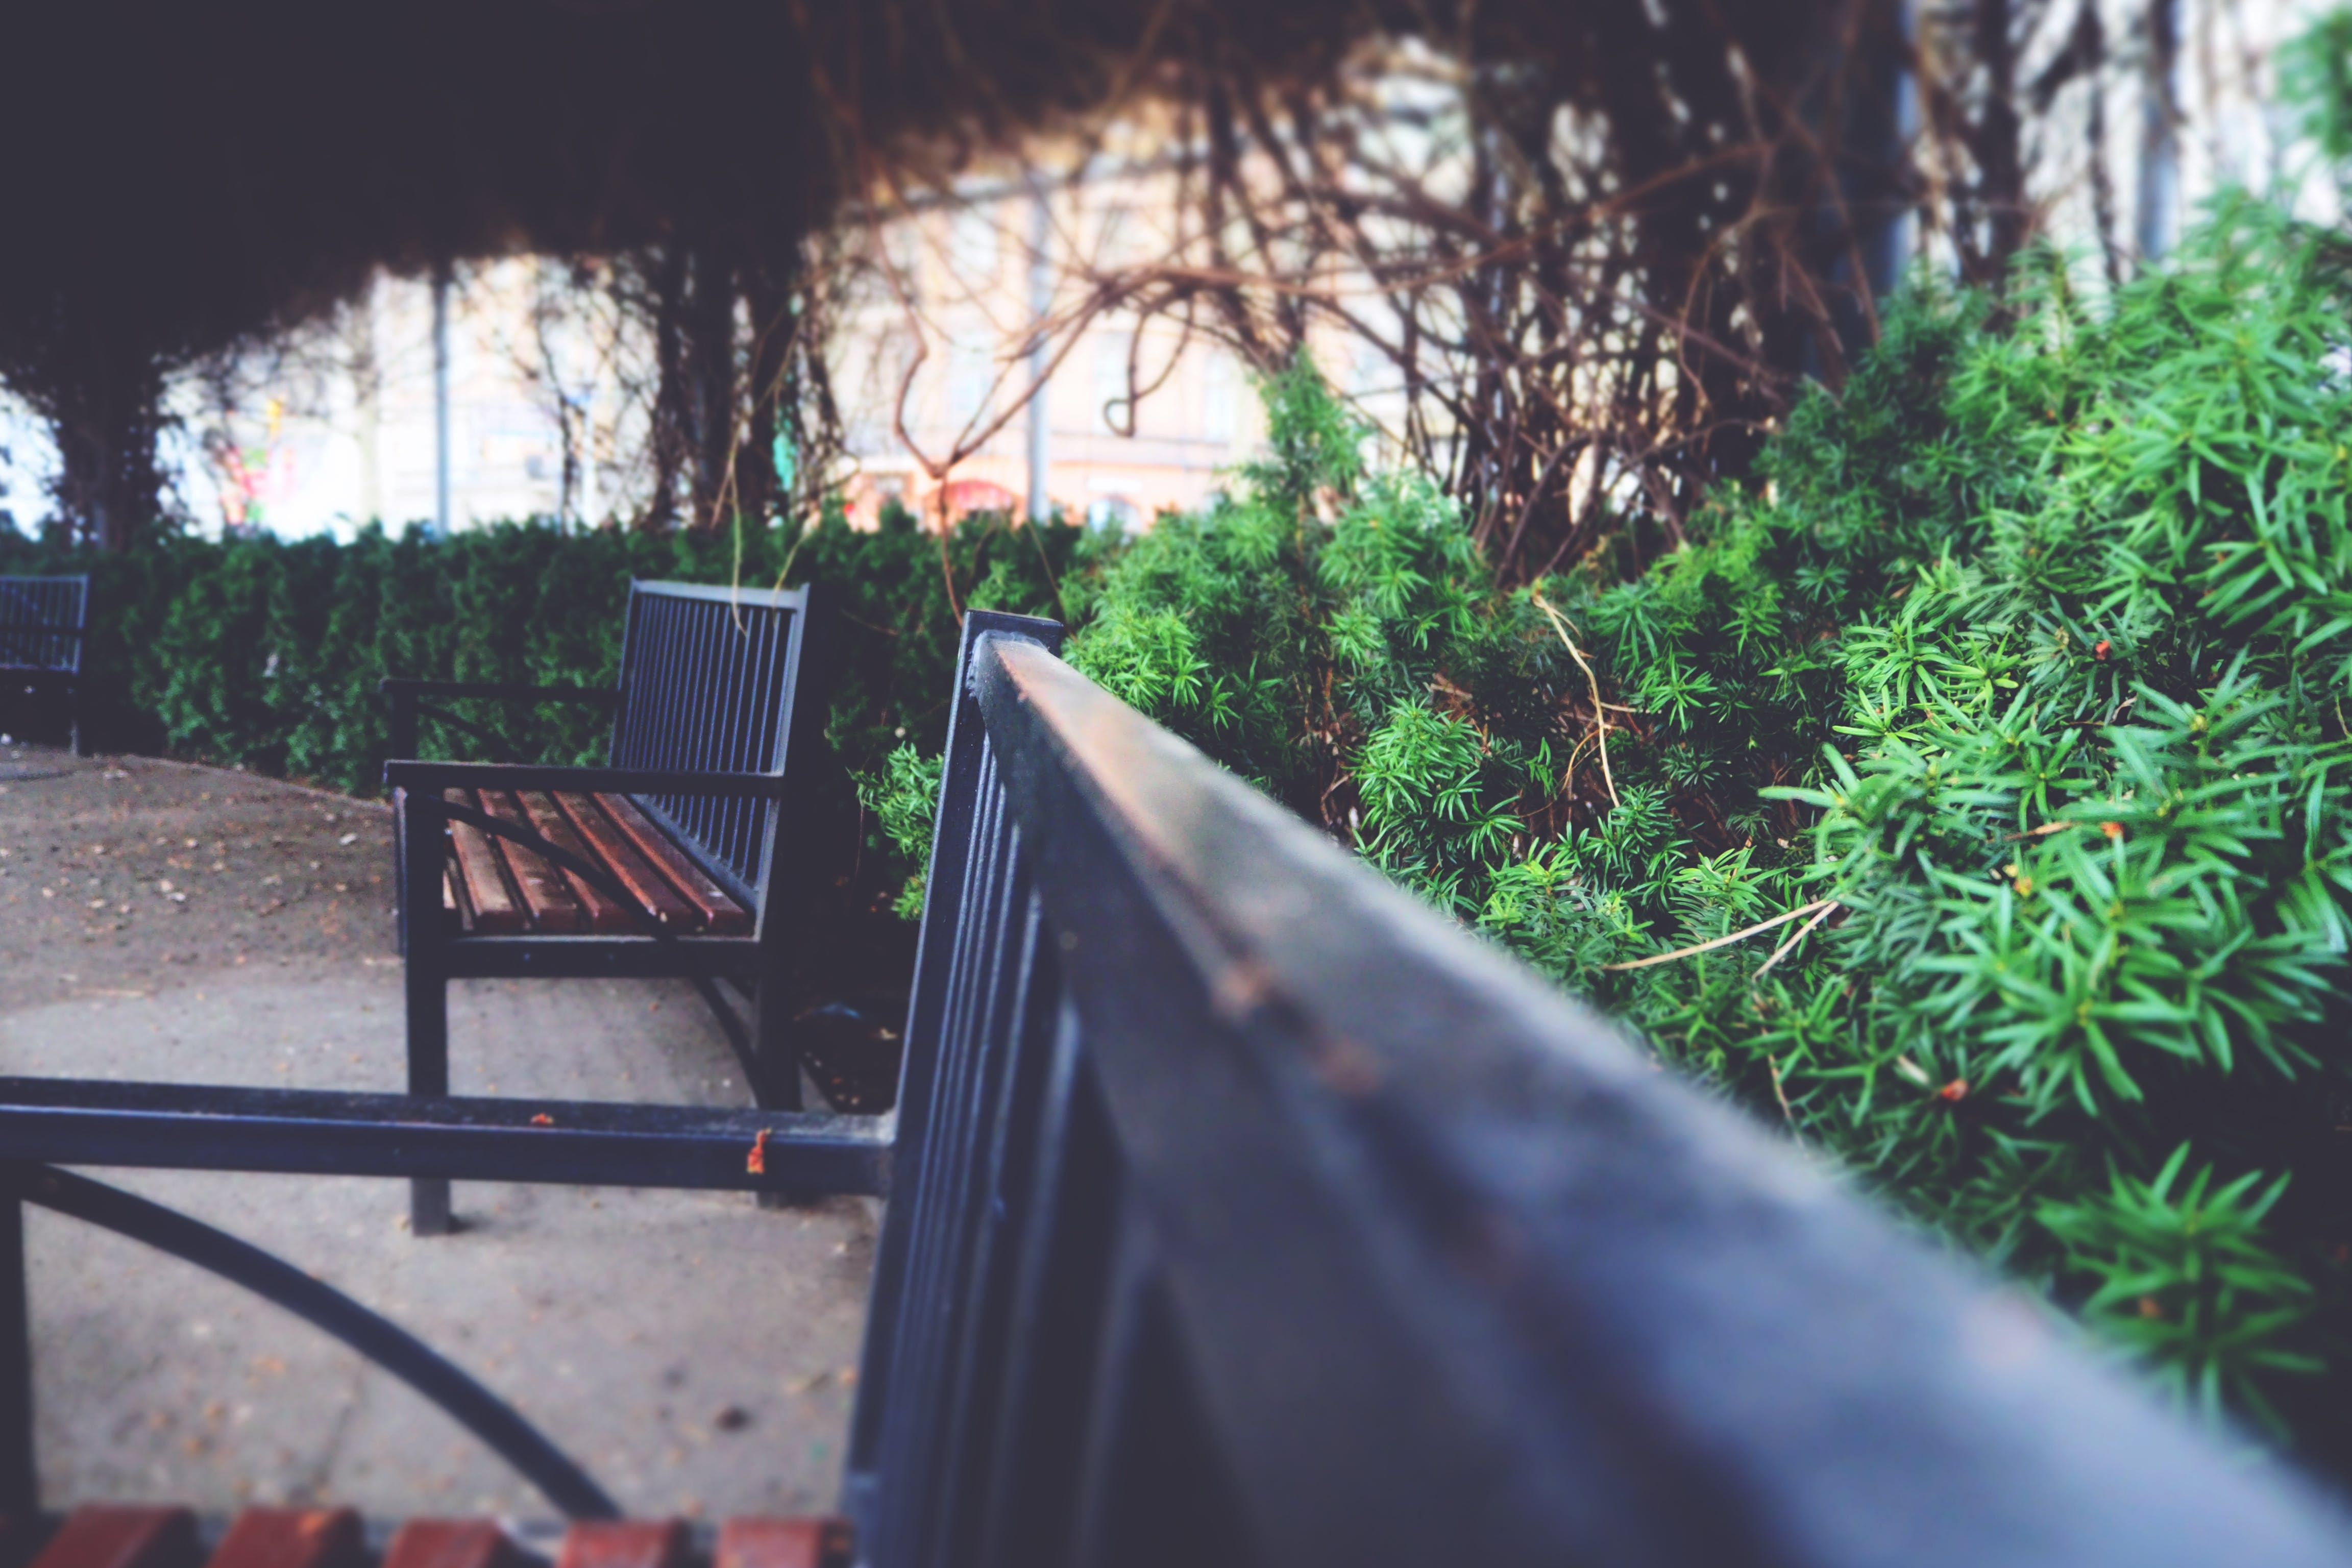 Two Black Metal Arm Benches Near Green Plants